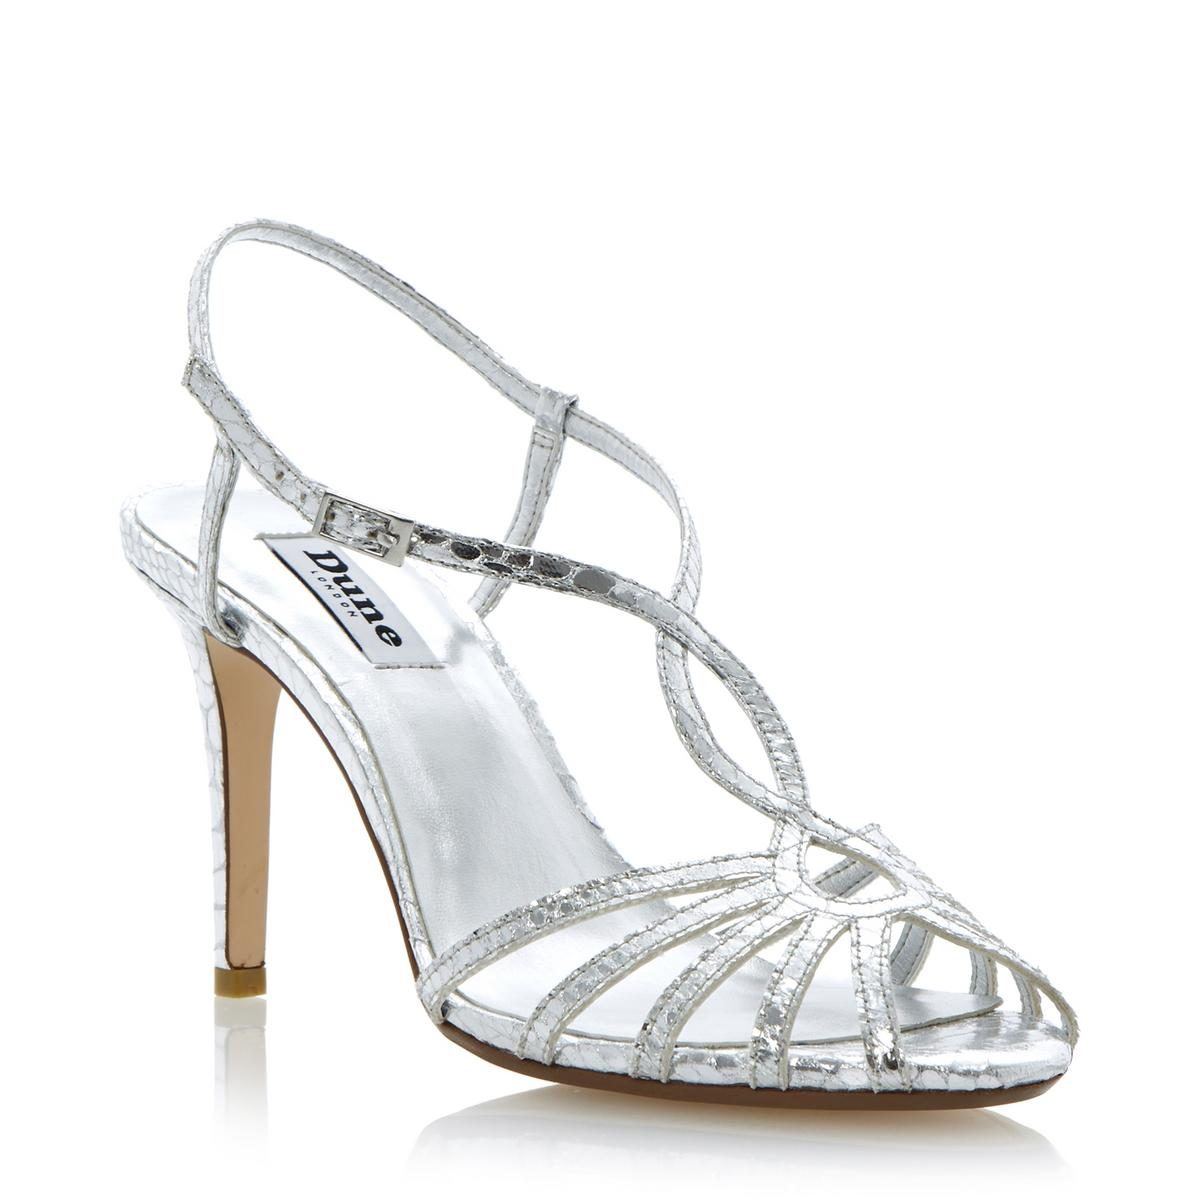 Find strappy heels silver at ShopStyle. Shop the latest collection of strappy heels silver from the most popular stores - all in one place.